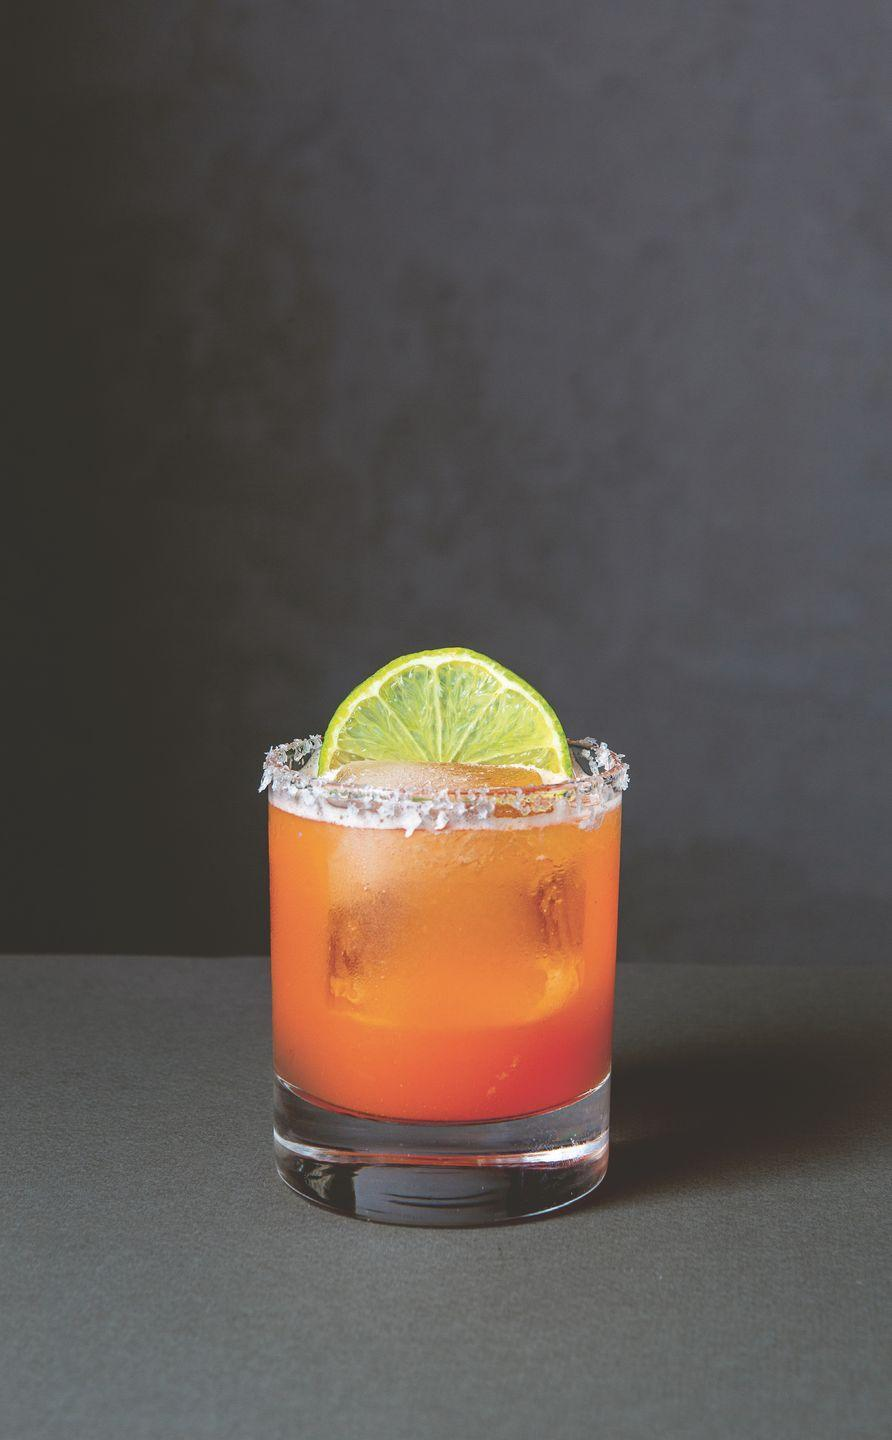 """<p>""""The combination of sweet carrots, tart lime, and spicy Ginger Syrup makes for a delicious riff in this cocktail created by Tamer Hamawi of New York's Gran Eléctrica,"""" writes Stillman in <em>Spirited</em>. Plus, this drink is absolutely beautiful!</p><p><strong>Ingredients:</strong></p><p>1 1/2 ounce (45 ml) blanco tequila<br>1/2 ounce (15 ml) triple sec<br>1 ounce (30 ml) fresh lime juice<br>1 ounce (30 ml) carrot juice<br>1/2 ounce (15 ml) Ginger Syrup (p. 24)<br>Lime wedge, dehydrated lime zest<br>Sea salt, for salt rim<br>Lime wheel, to garnish</p><p><strong>Directions:</strong></p><p>For the lime salt rim, combine 1 part dried lime zest to 4 parts sea salt in a shallow saucer. Rub the rim of a rocks glass with a lime wedge and dip the glass into the salt mixture. Shake off any excess. Combine all the ingredients in a cocktail shaker filled with ice<br>and shake vigorously for 15–20 seconds, or until frosted on the outside. Strain into the glass with fresh ice. Garnish with a lime wheel.<em><br></em></p><p><em>Reprinted from <a href=""""https://urldefense.com/v3/__https://www.phaidon.com/store/food-cook/spirited-9781838661618/__;!!Ivohdkk!wgMkltU-PaHO4HwAVgN1ZFQIkGJX2DBDWVQcsLmV_D1J41V697waOxGzbEoMnsIgEg$"""" rel=""""nofollow noopener"""" target=""""_blank"""" data-ylk=""""slk:Spirited: Cocktails from Around the World"""" class=""""link rapid-noclick-resp"""">Spirited: Cocktails from Around the World</a> by Adrienne Stillman. © 2020 Phaidon Press</em></p>"""